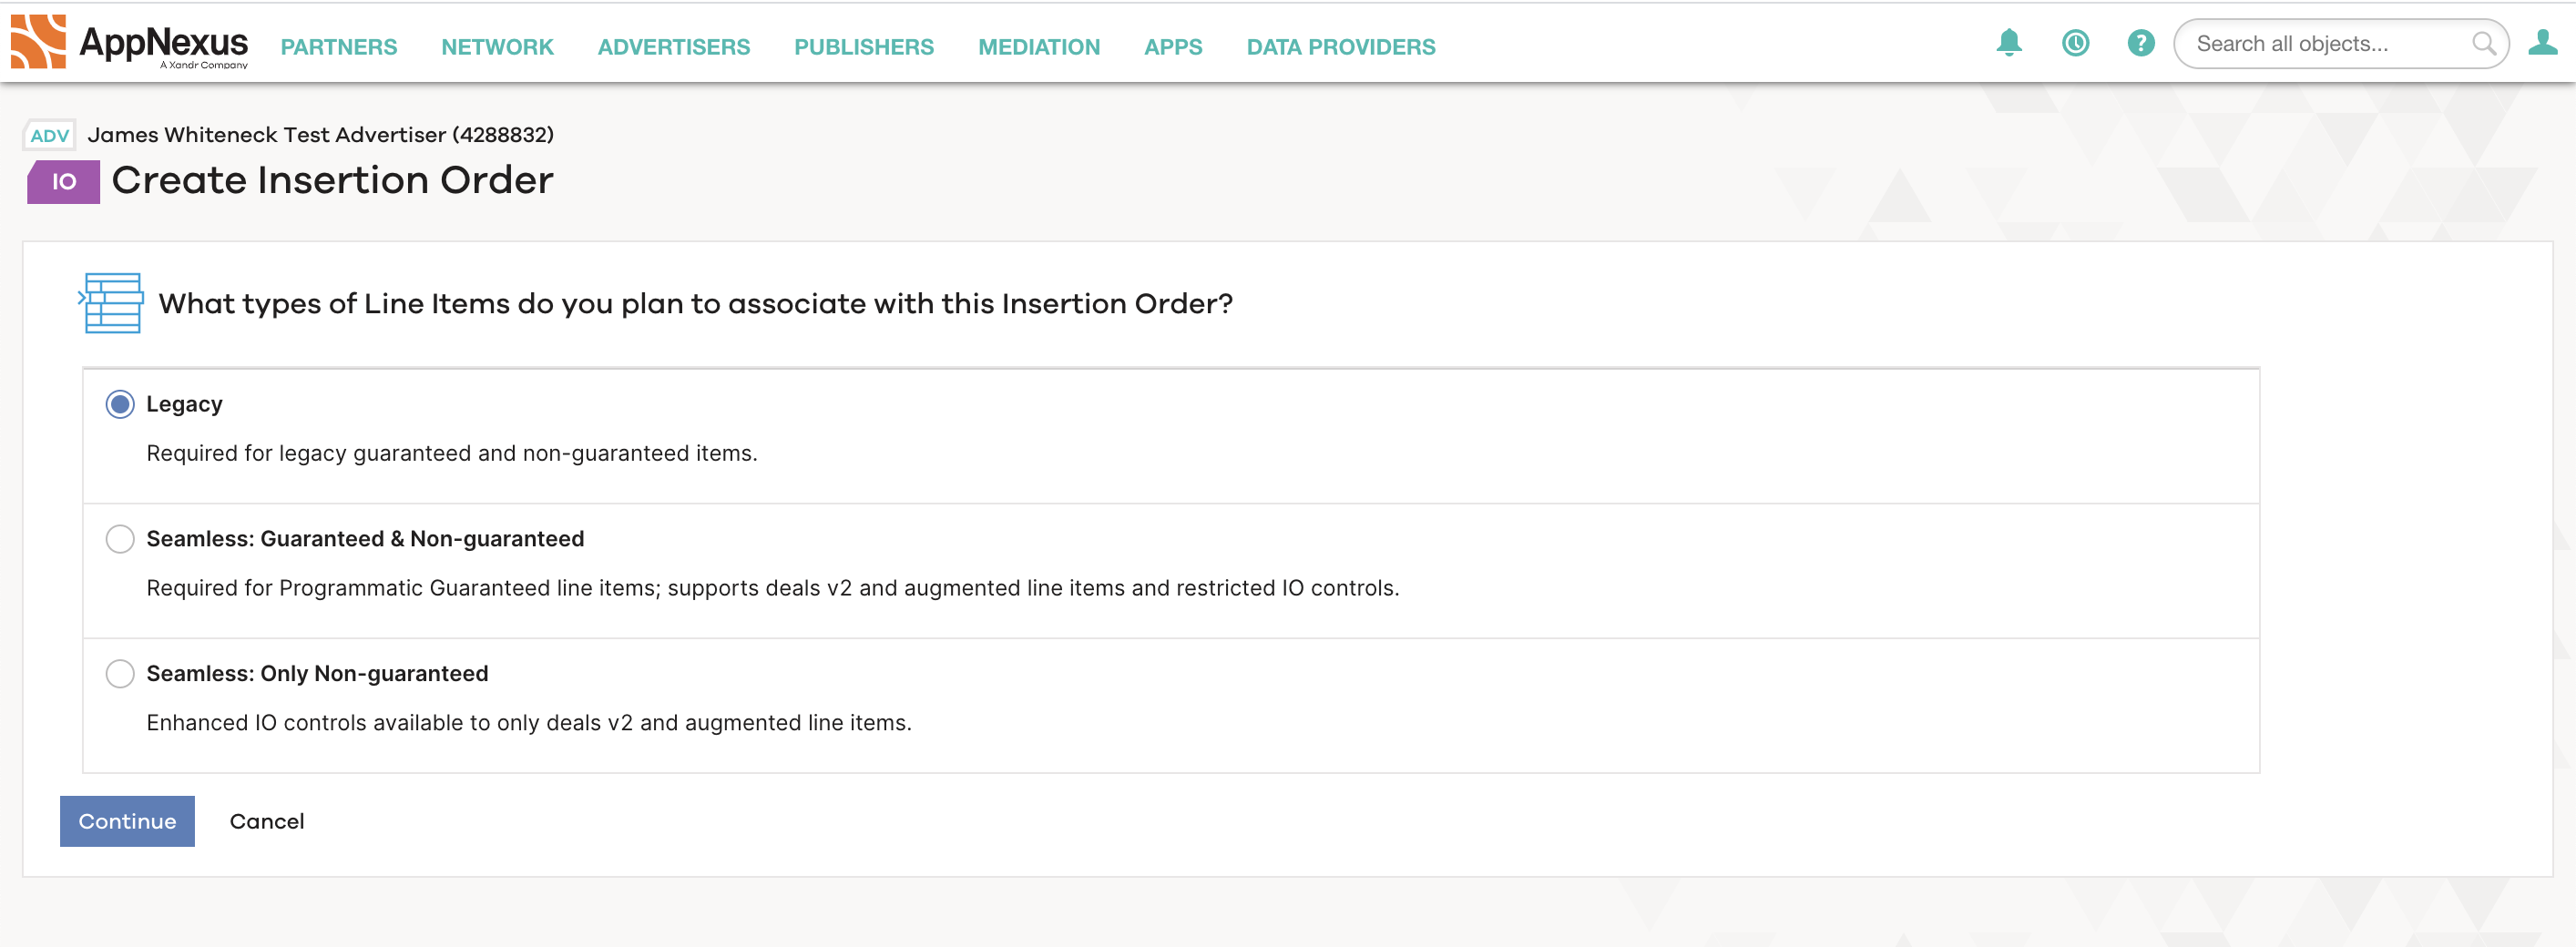 Screen for clients to choose between three types of insertion orders.